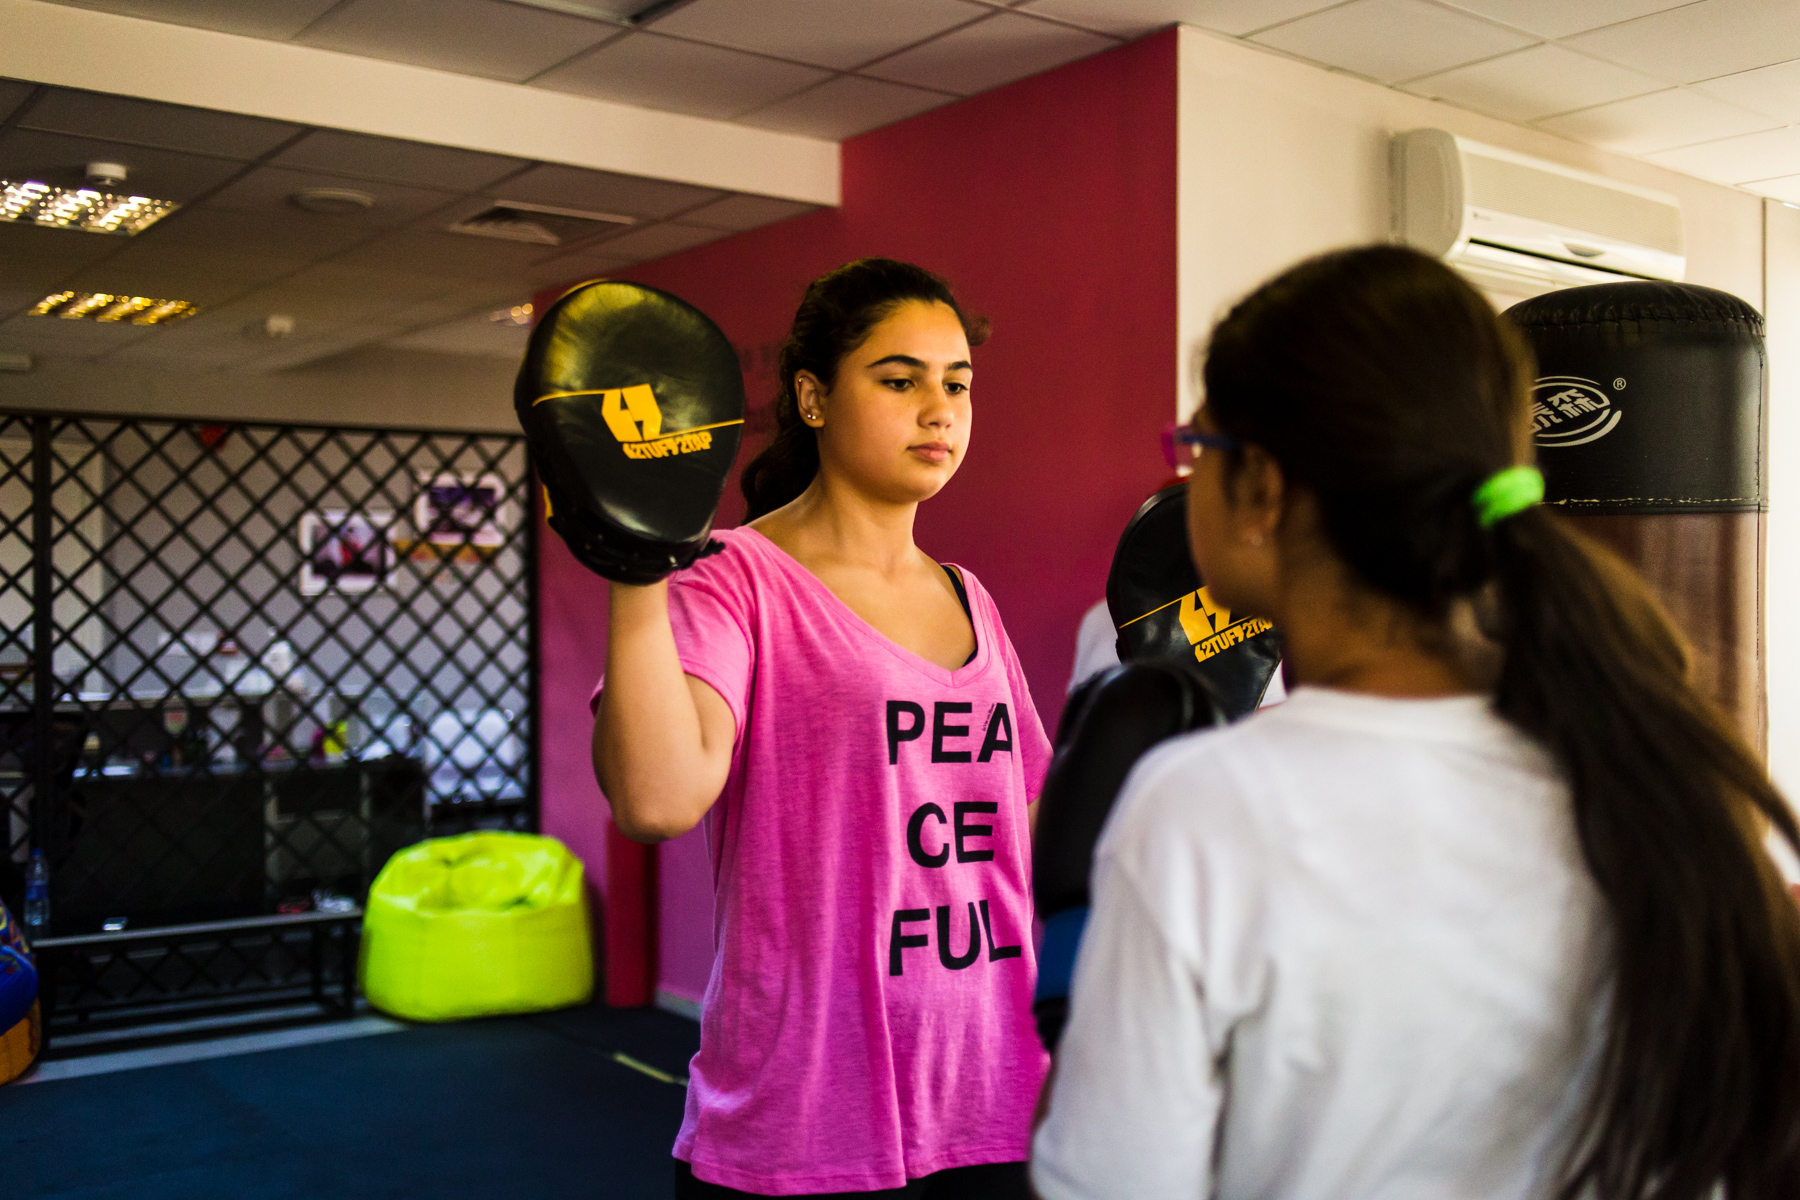 Zaina and Juwana Ghosheh practice high kicks during a self defense course at She Fighter in Amman, Jordan, on August 21, 2015. The She Fighter studio was founded by Lina Khalifeh, and offers self defense classes to young women to protect against harassment.